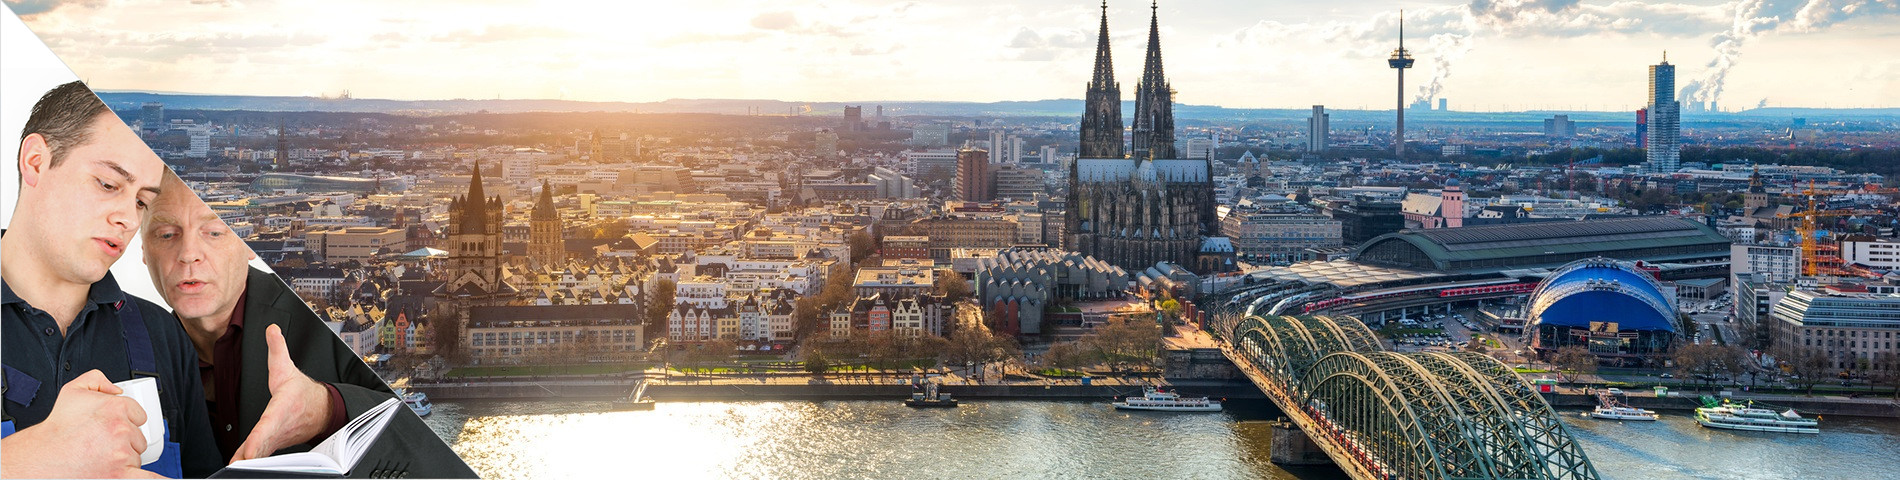 Cologne - One-to-One